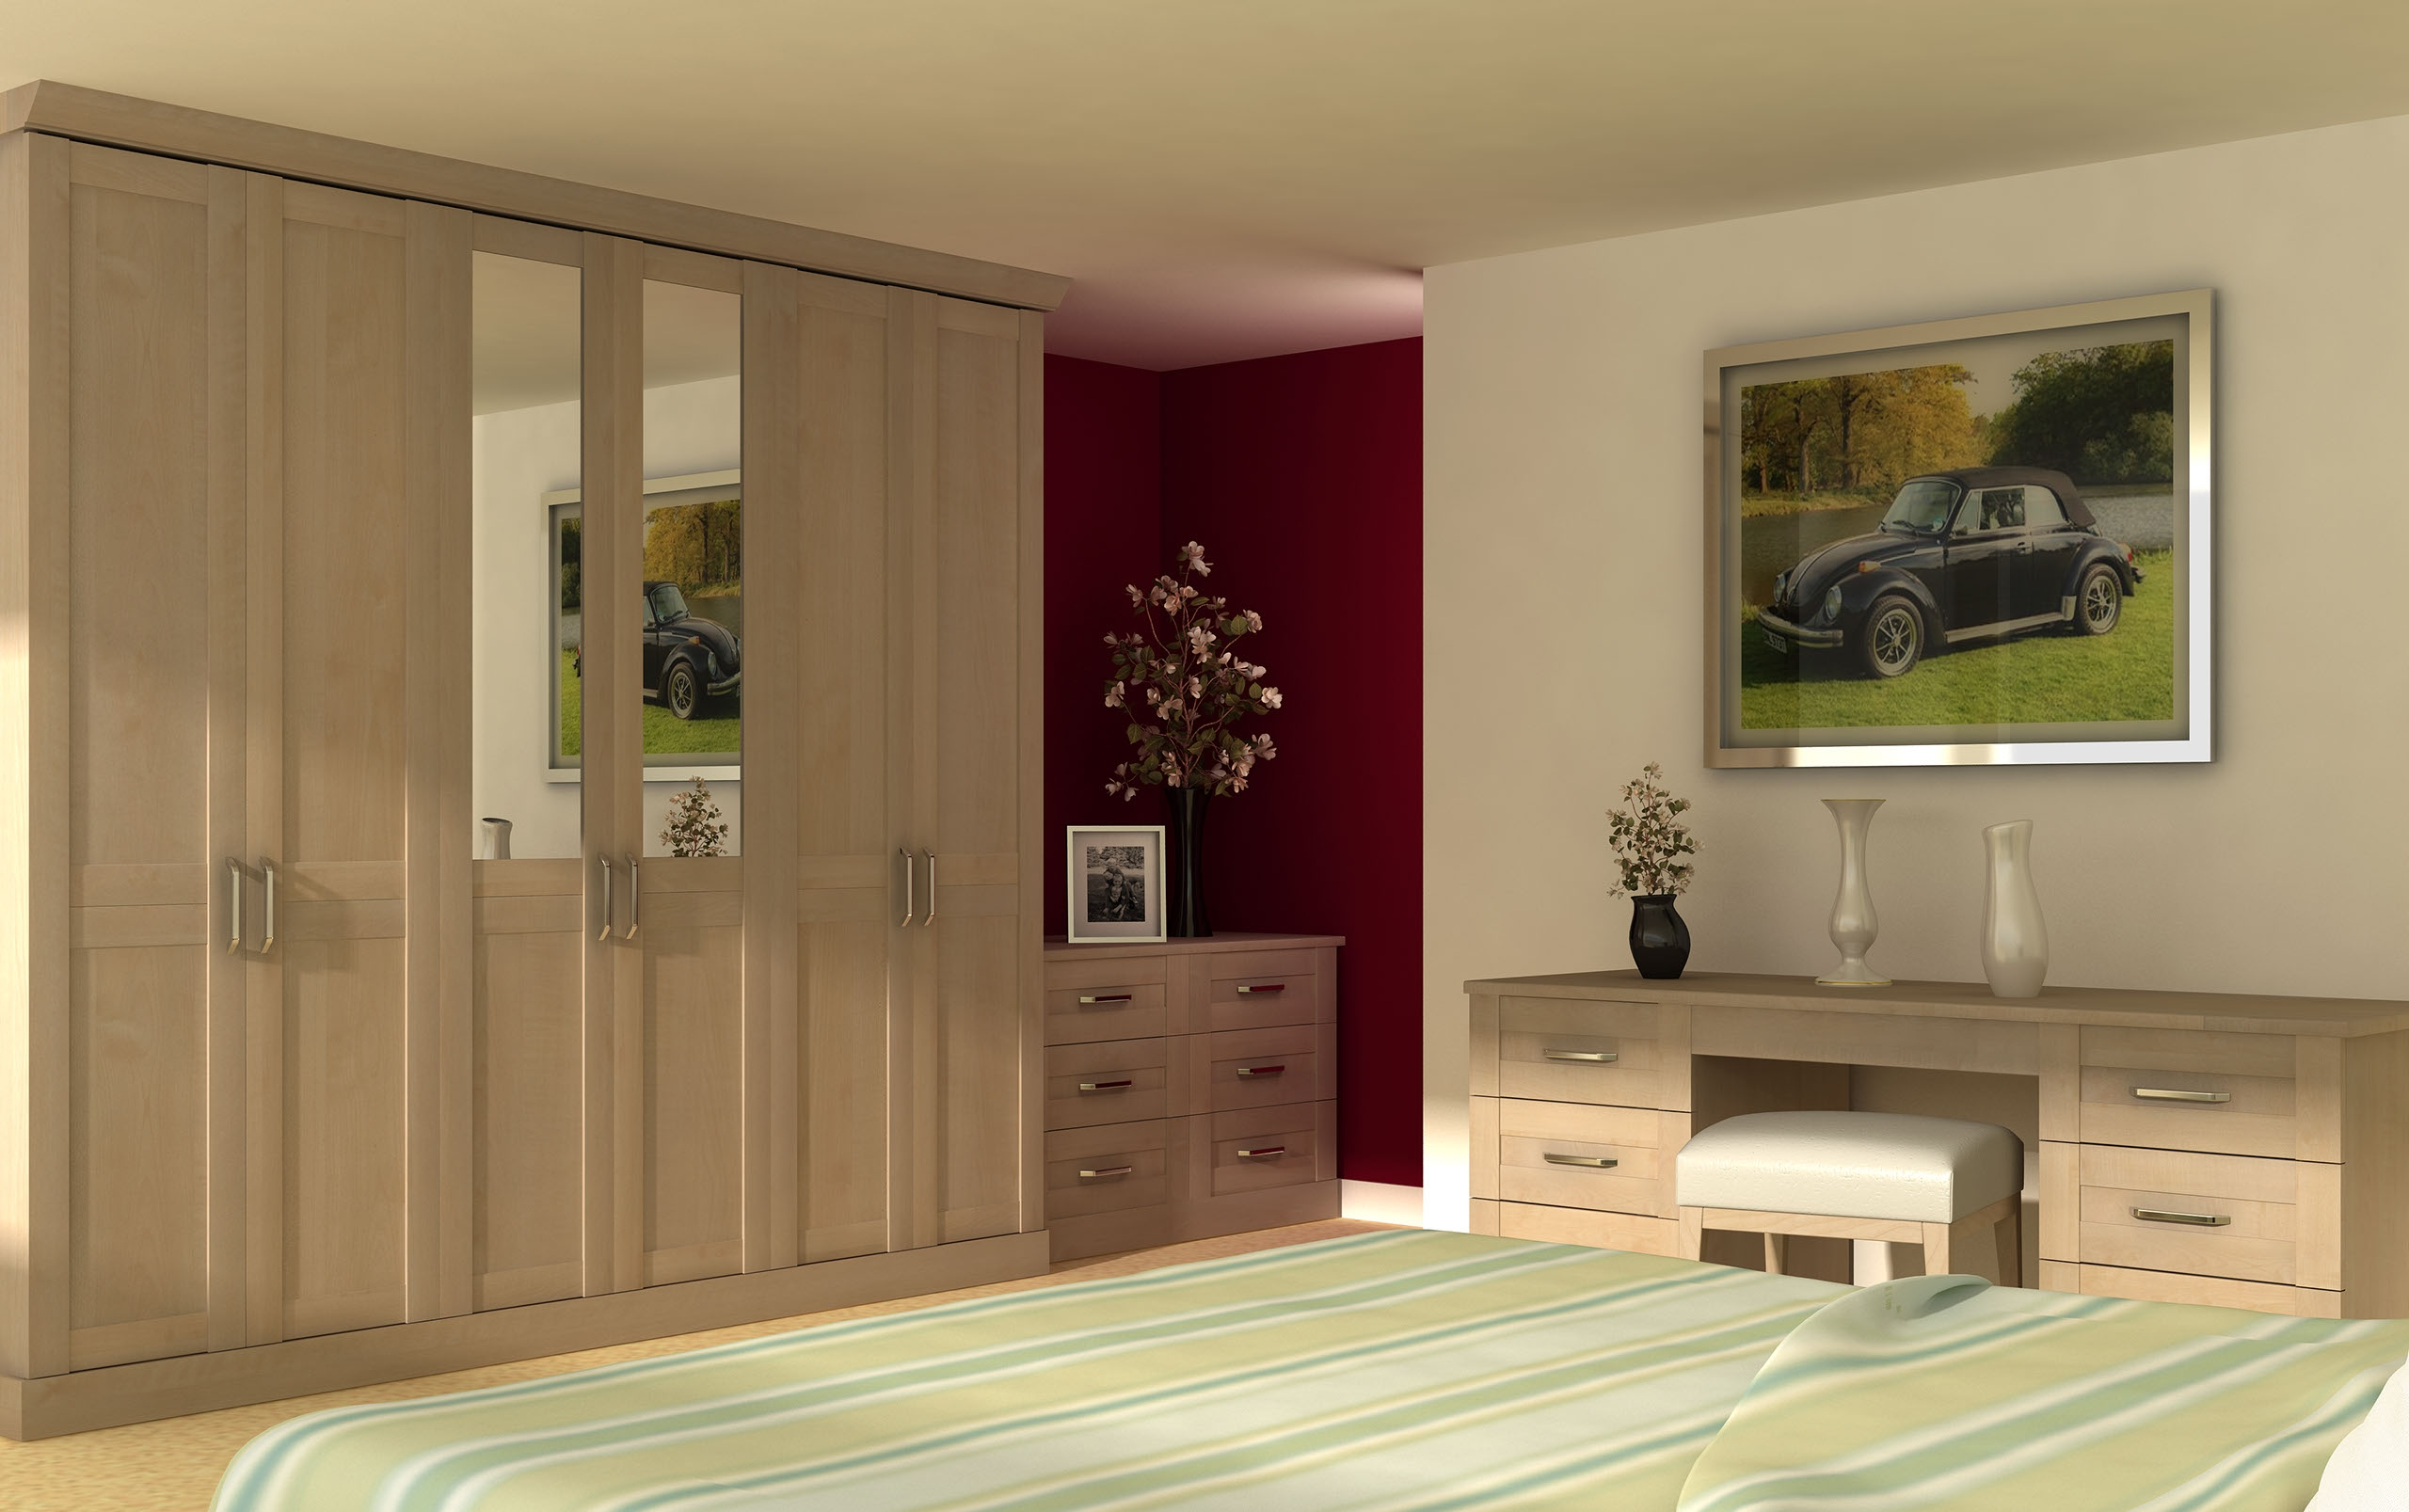 Fitted Sliding Wardrobes Excellent Mirrored Fitted Wardrobes Intended For Solid Wood Built In Wardrobes (Image 8 of 15)